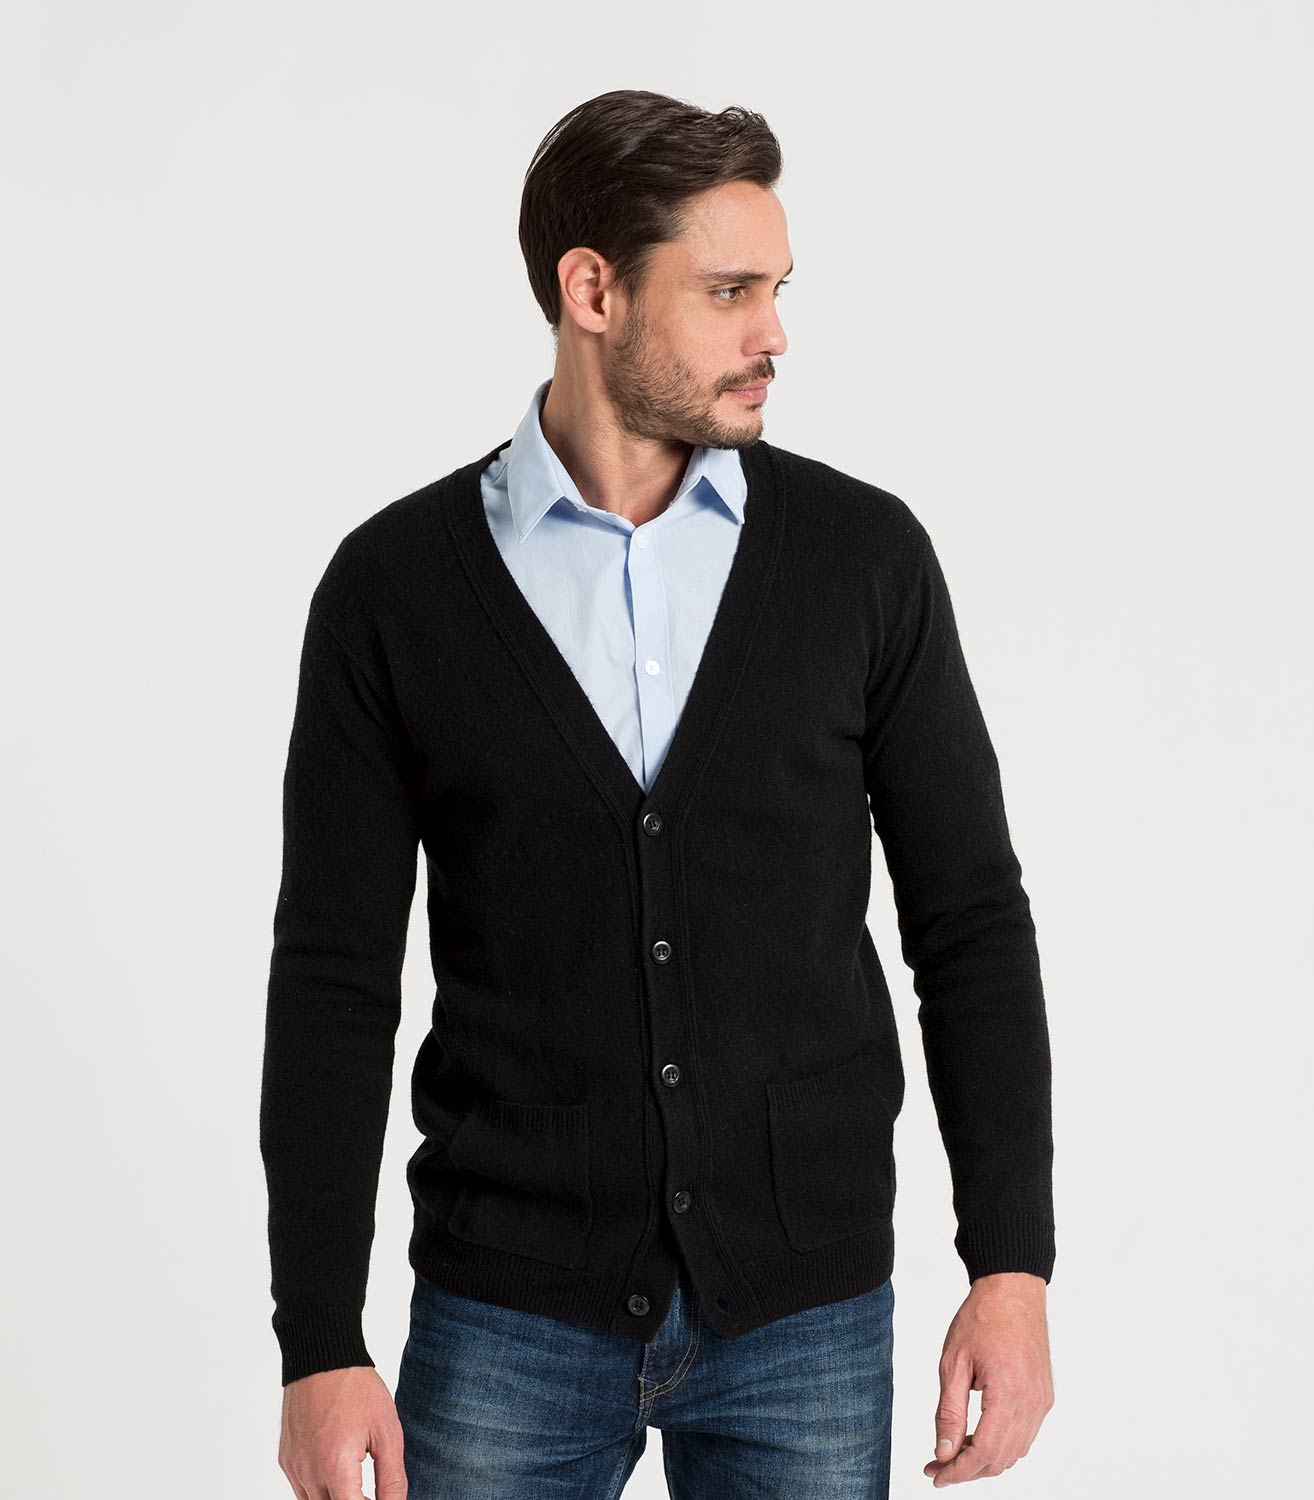 Men's cardigan for your instant warm fix with - storiestrending.com